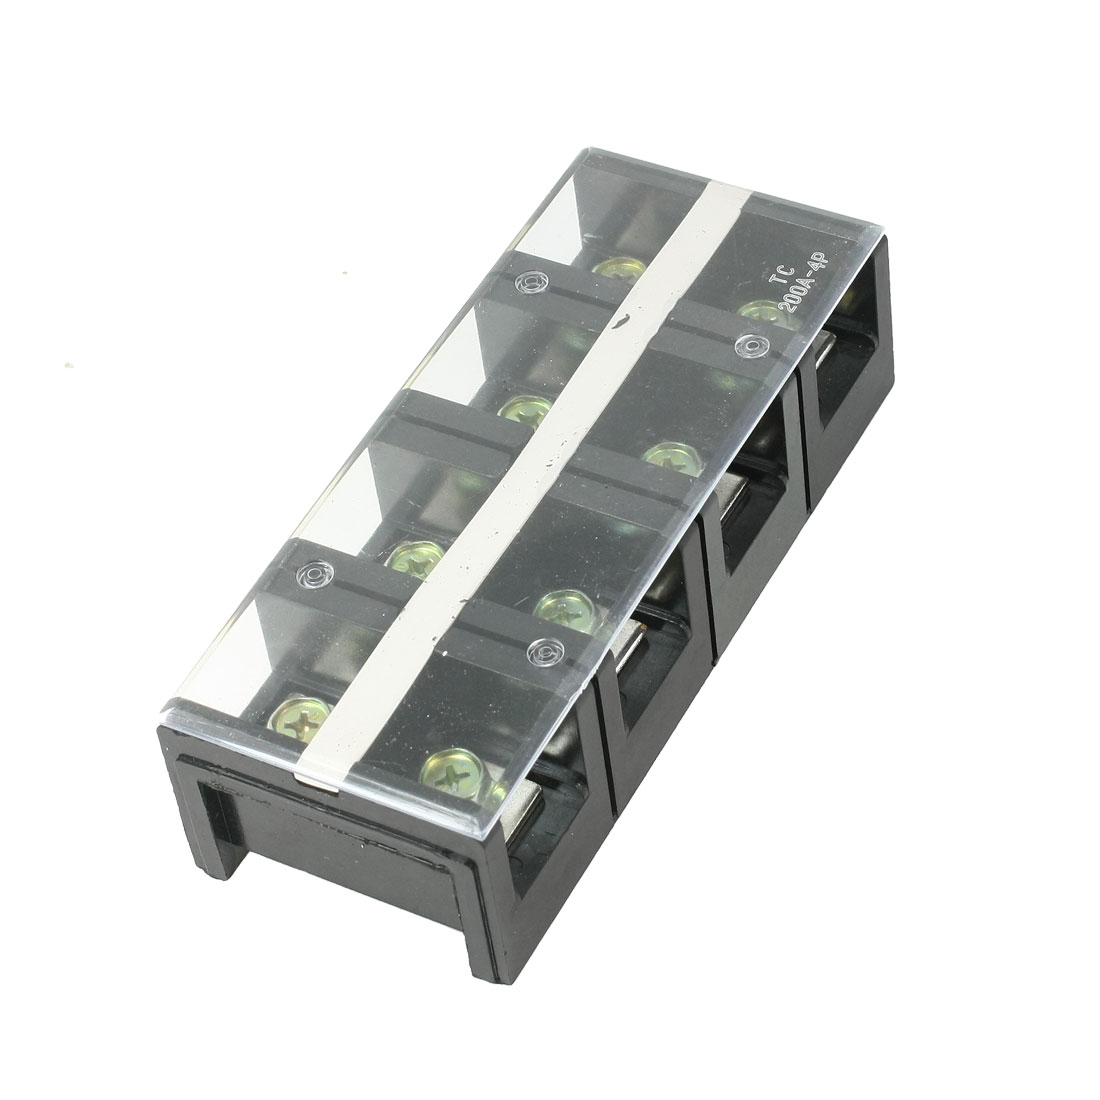 600V 200A Dual Row 4P 4 Positions Barrier Screw Terminal Block TC-2004